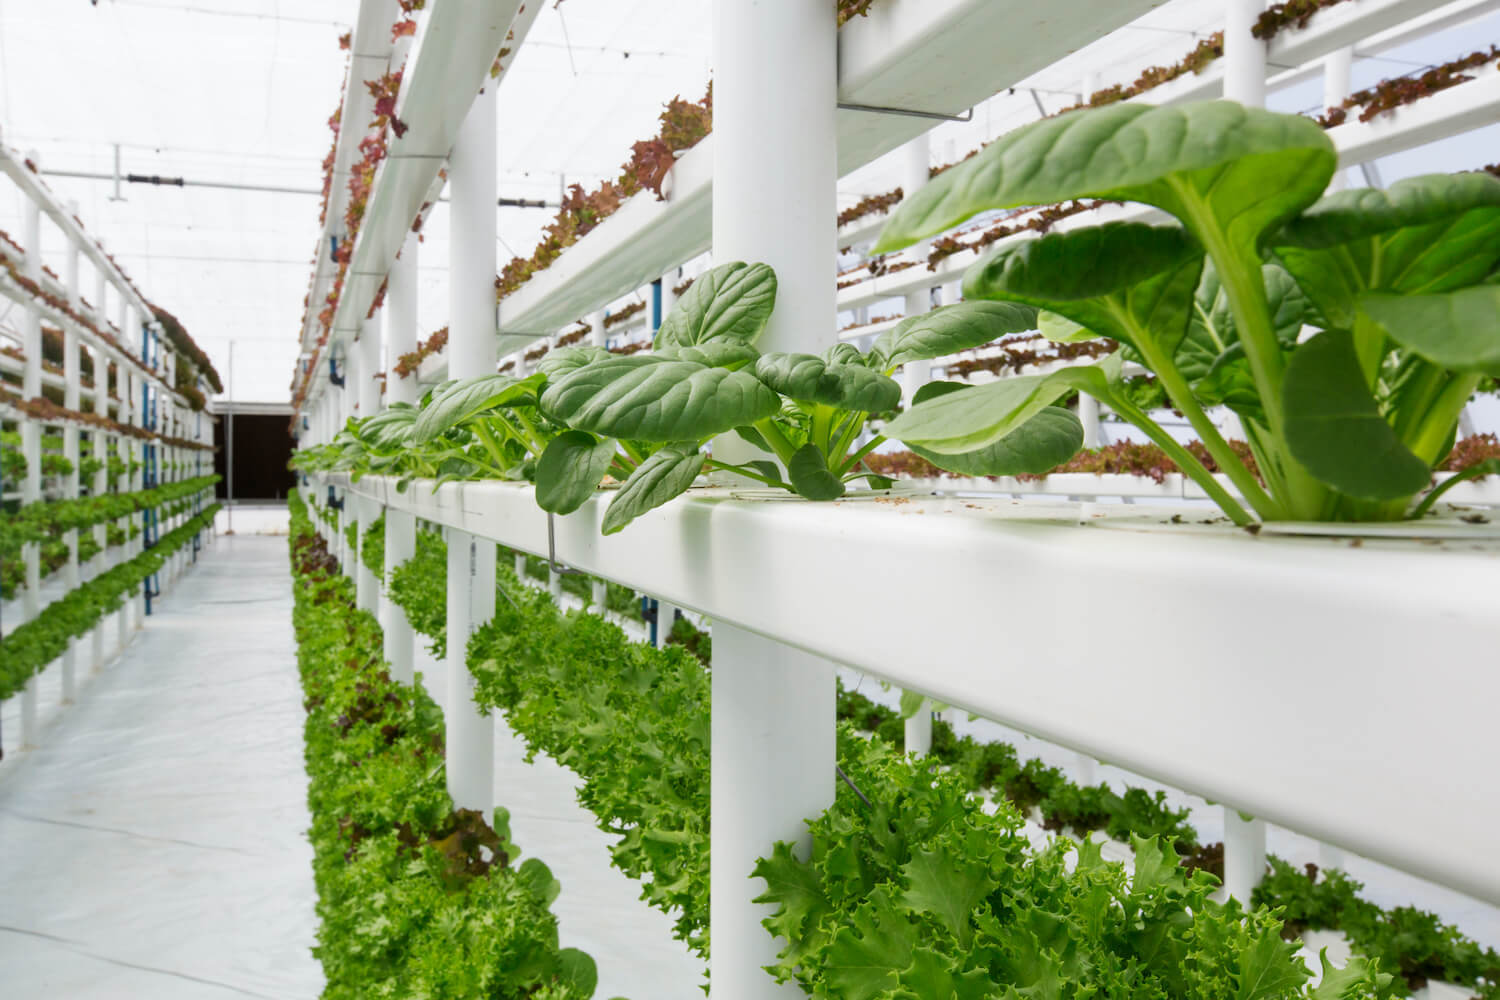 An indoor farm, utilizing hydroponics and vertical farming to maximise production and minimize water usage. September 2020